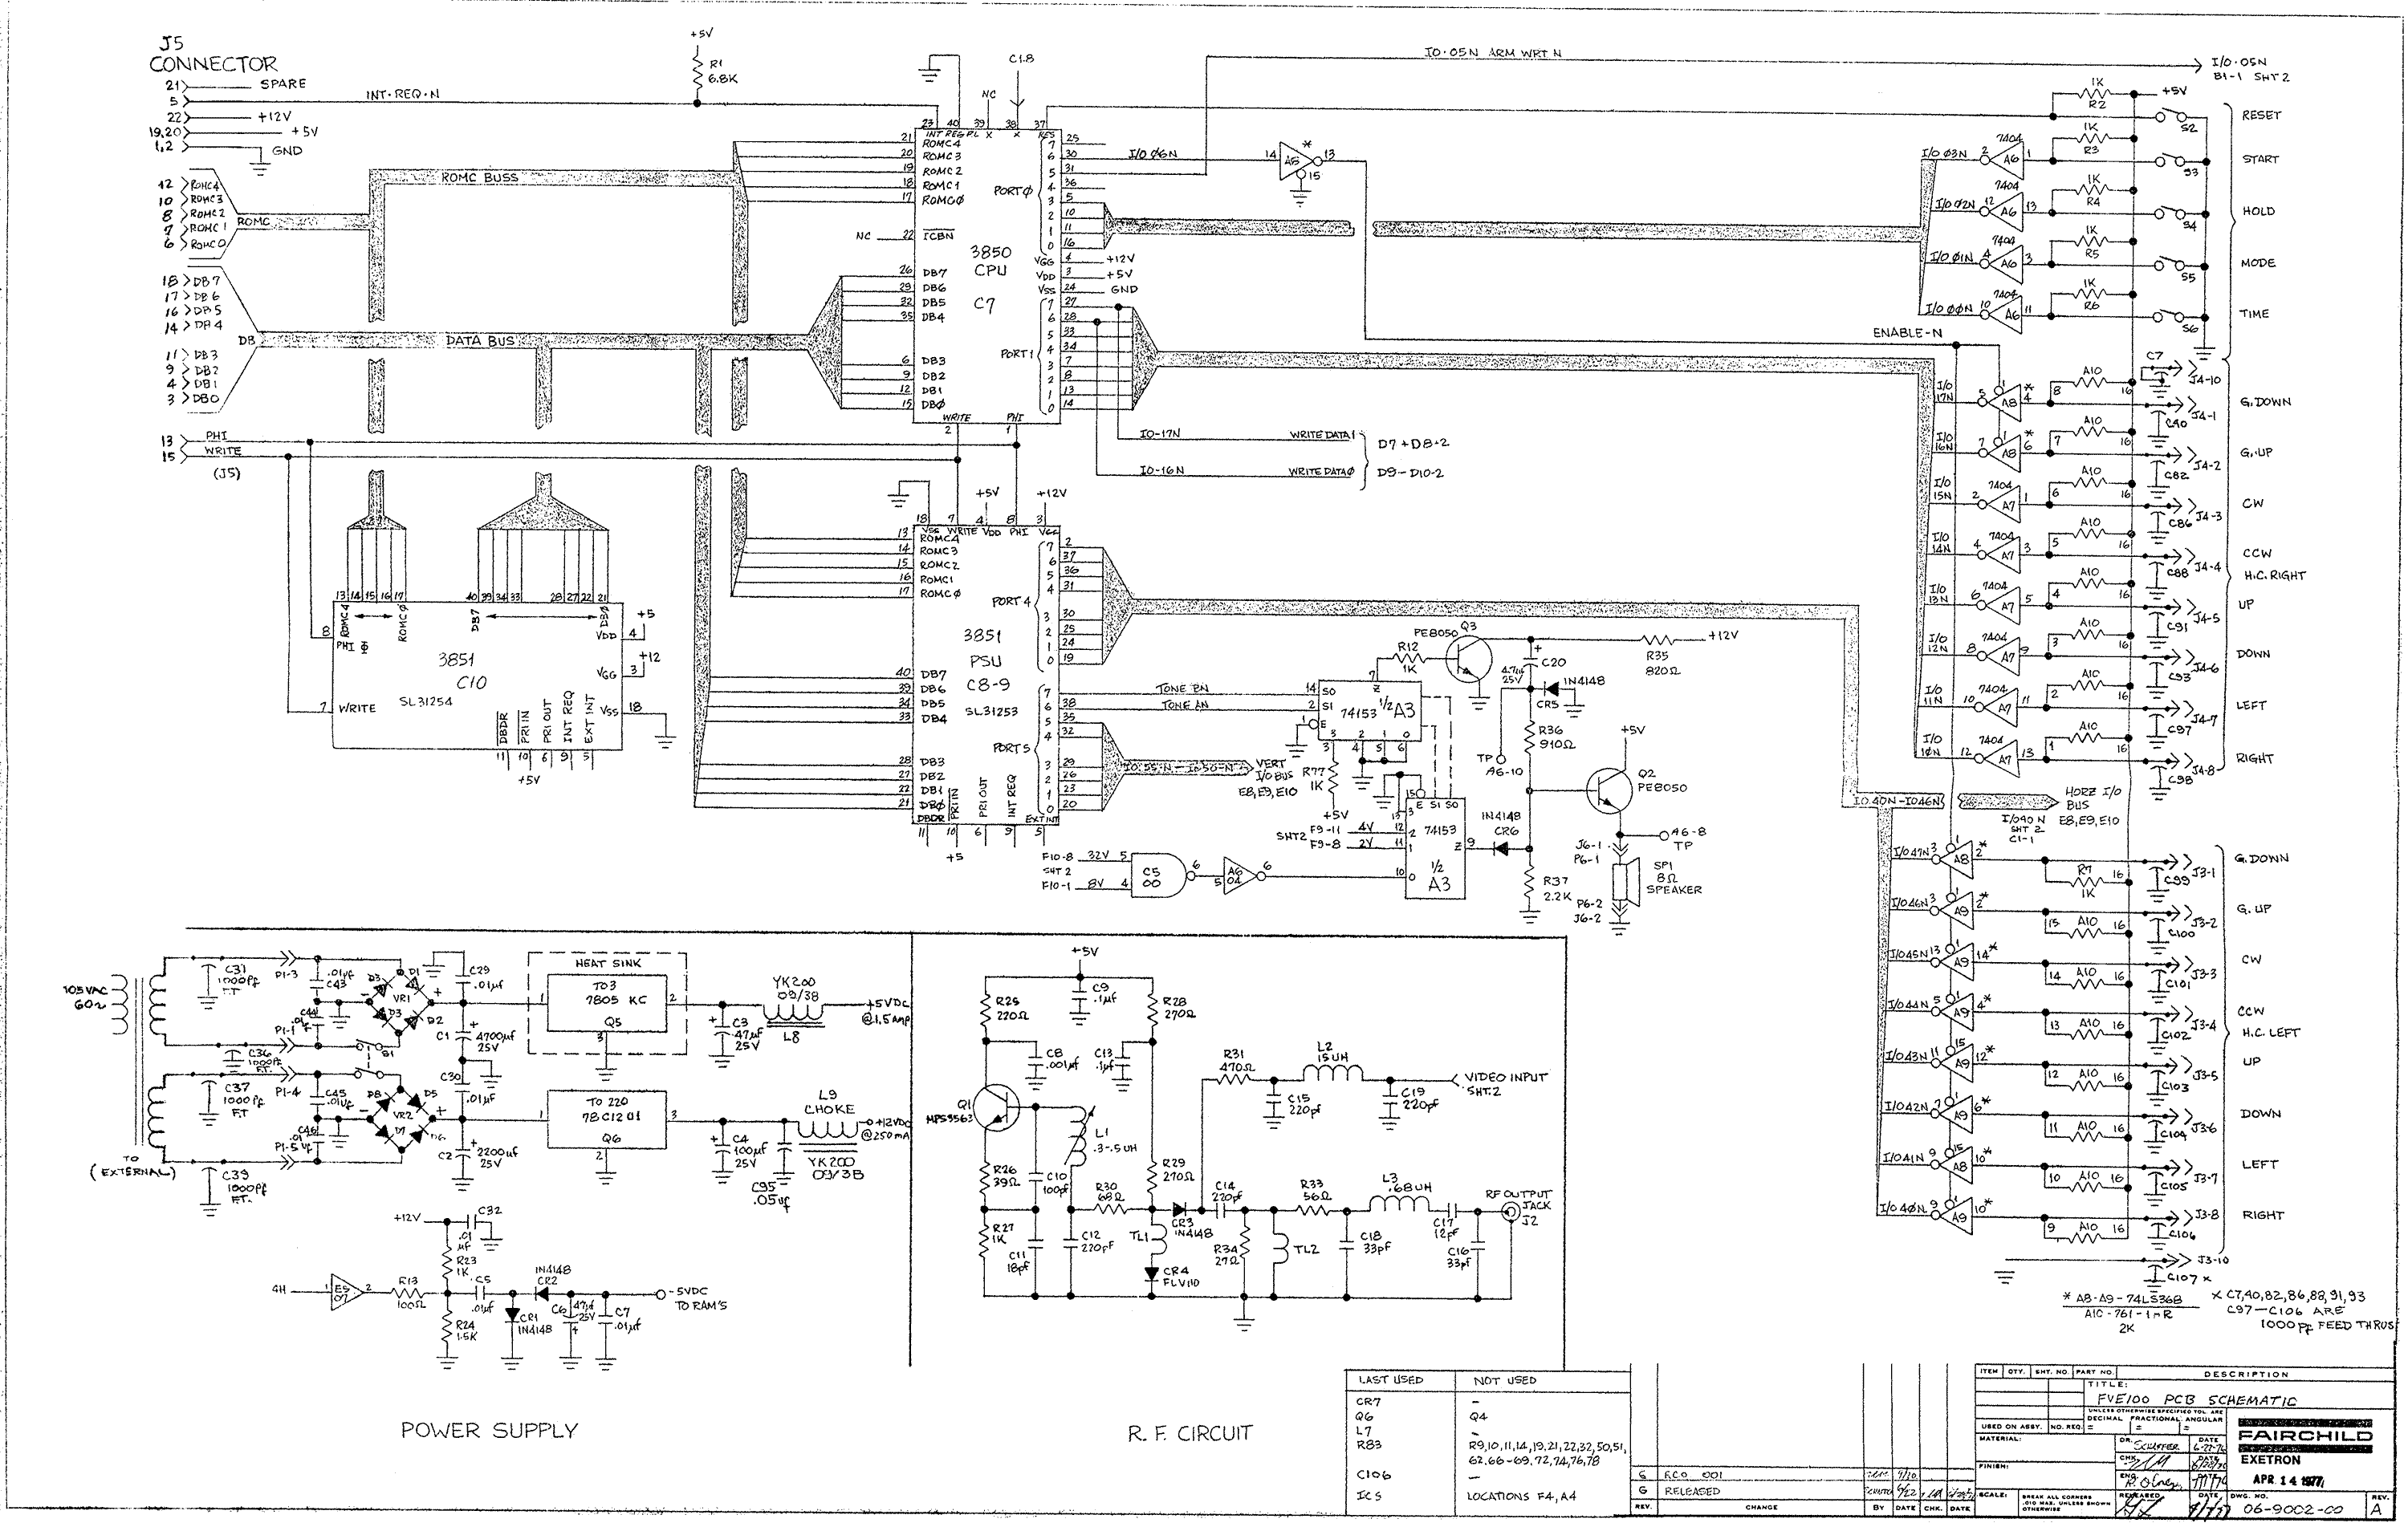 Schematic Channelf